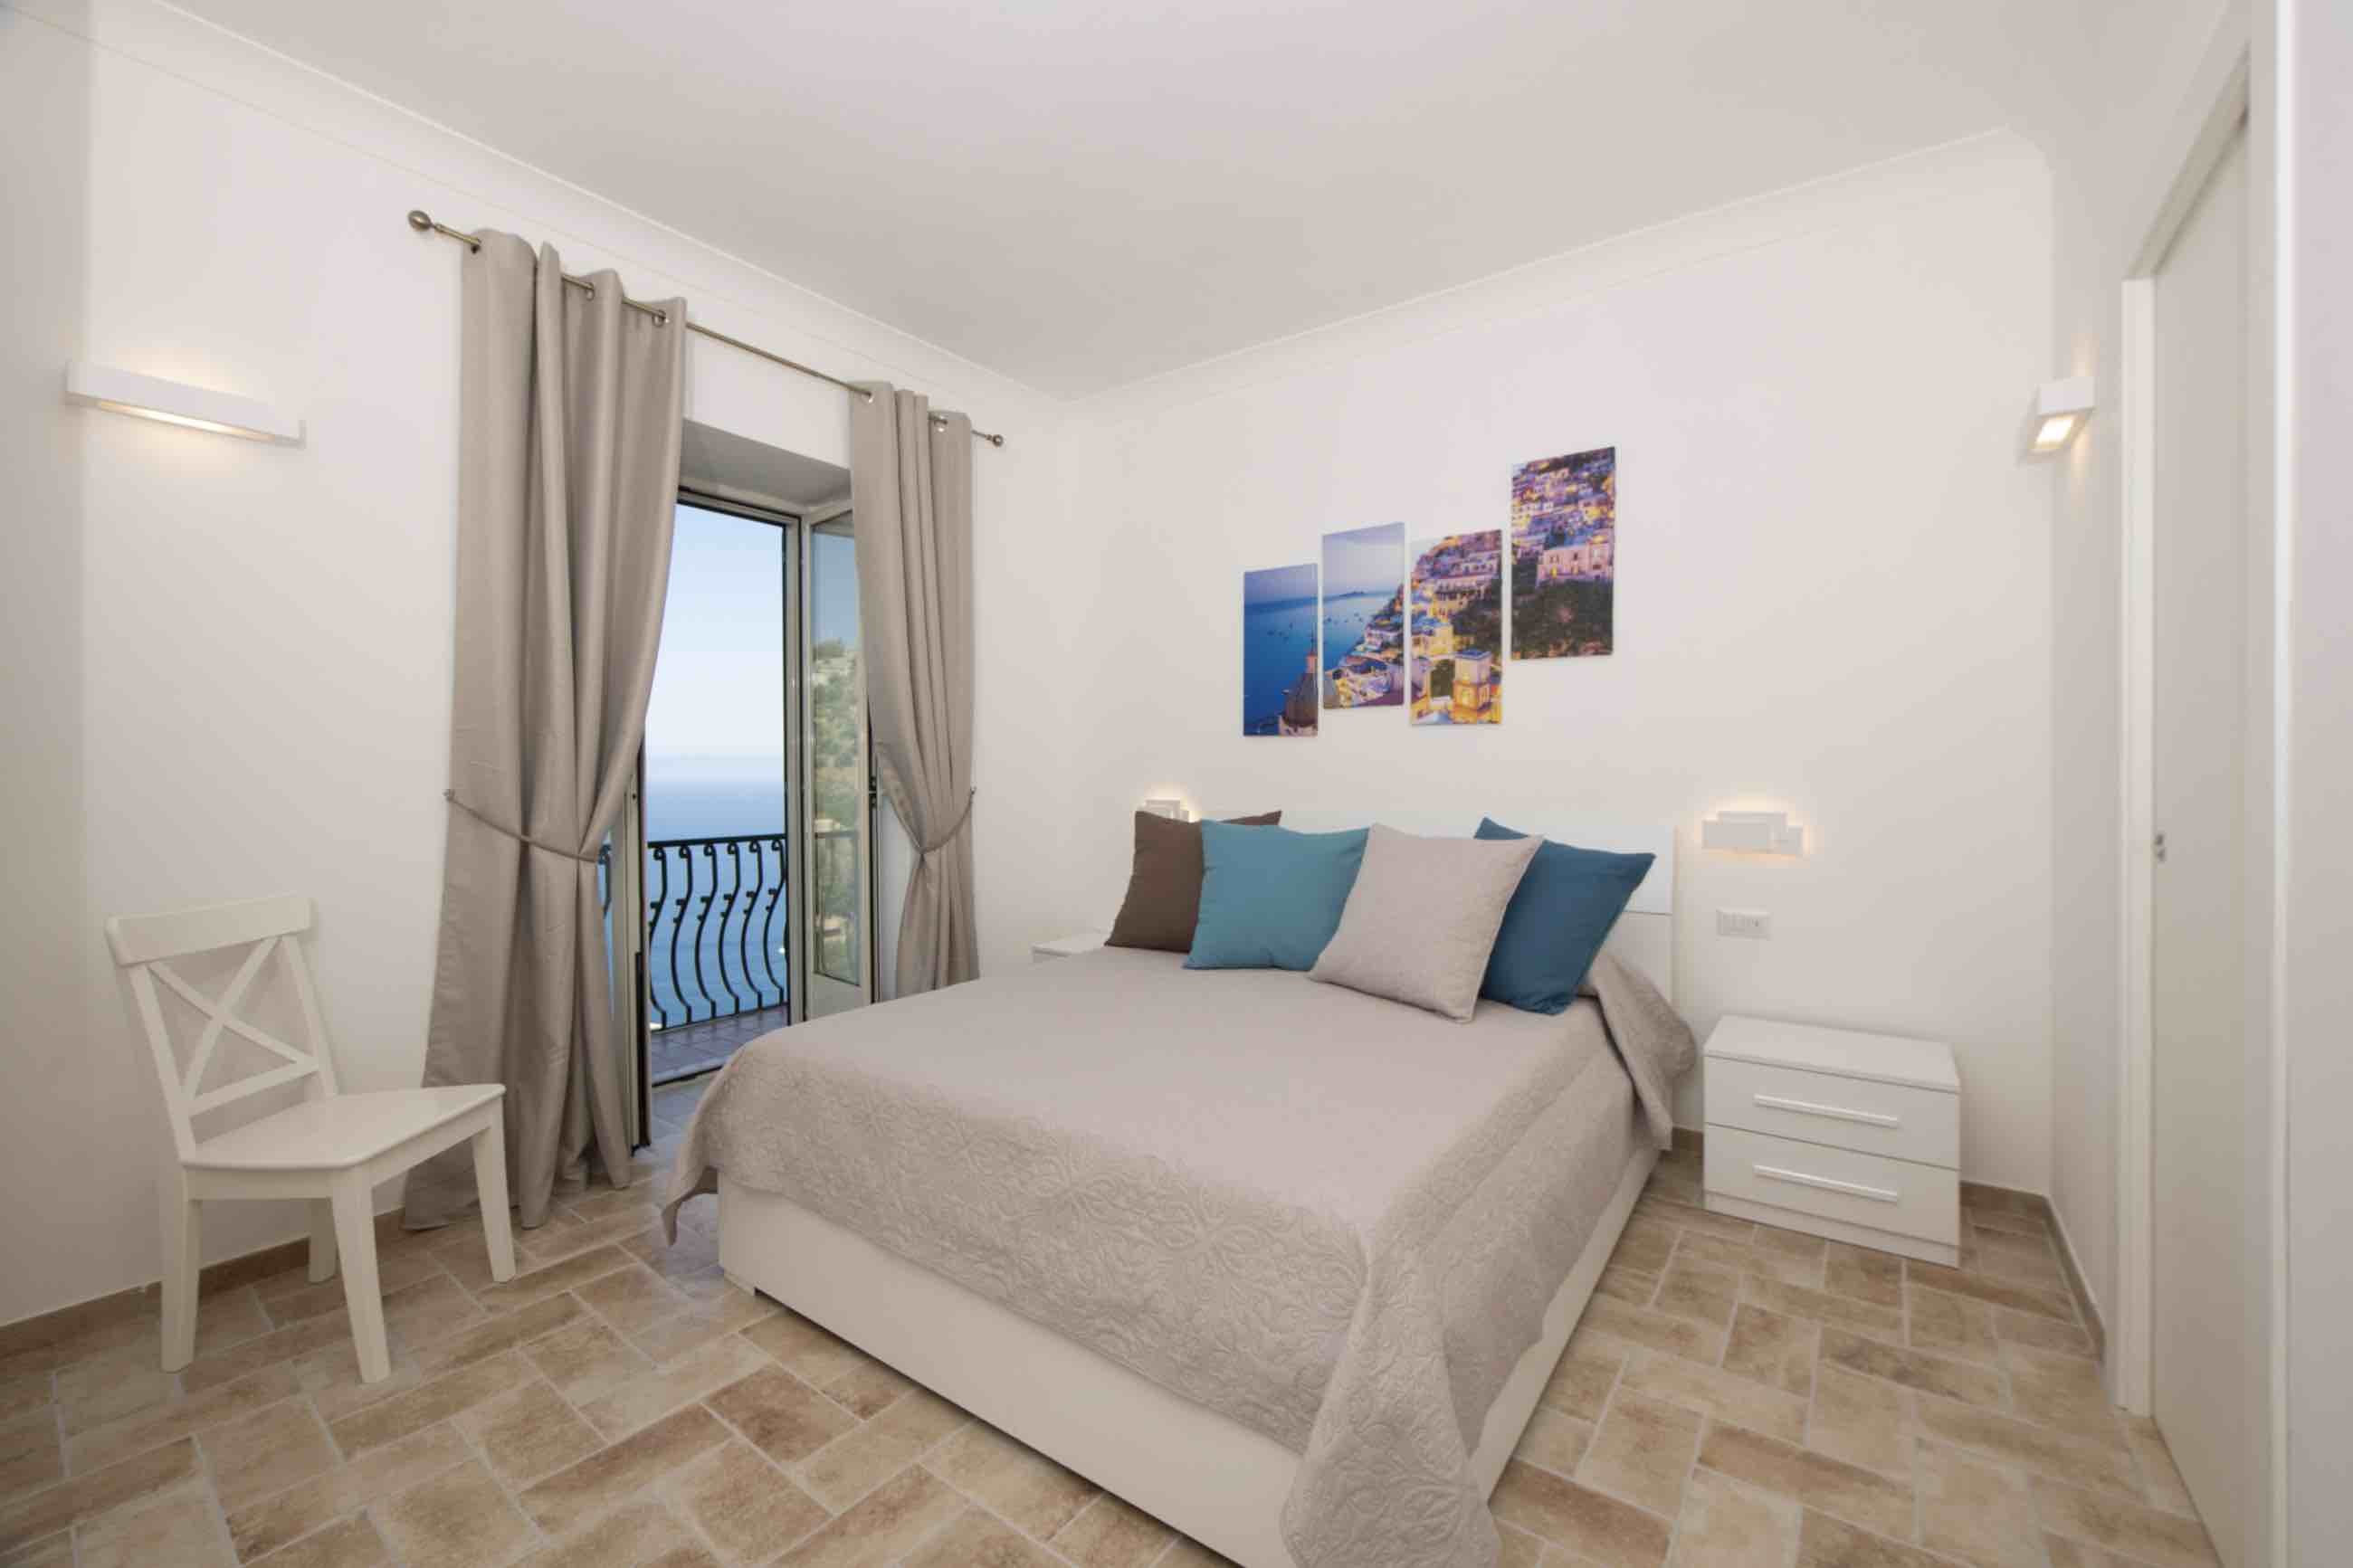 B&B Anastasia - Bed and breakfast in Amalfi